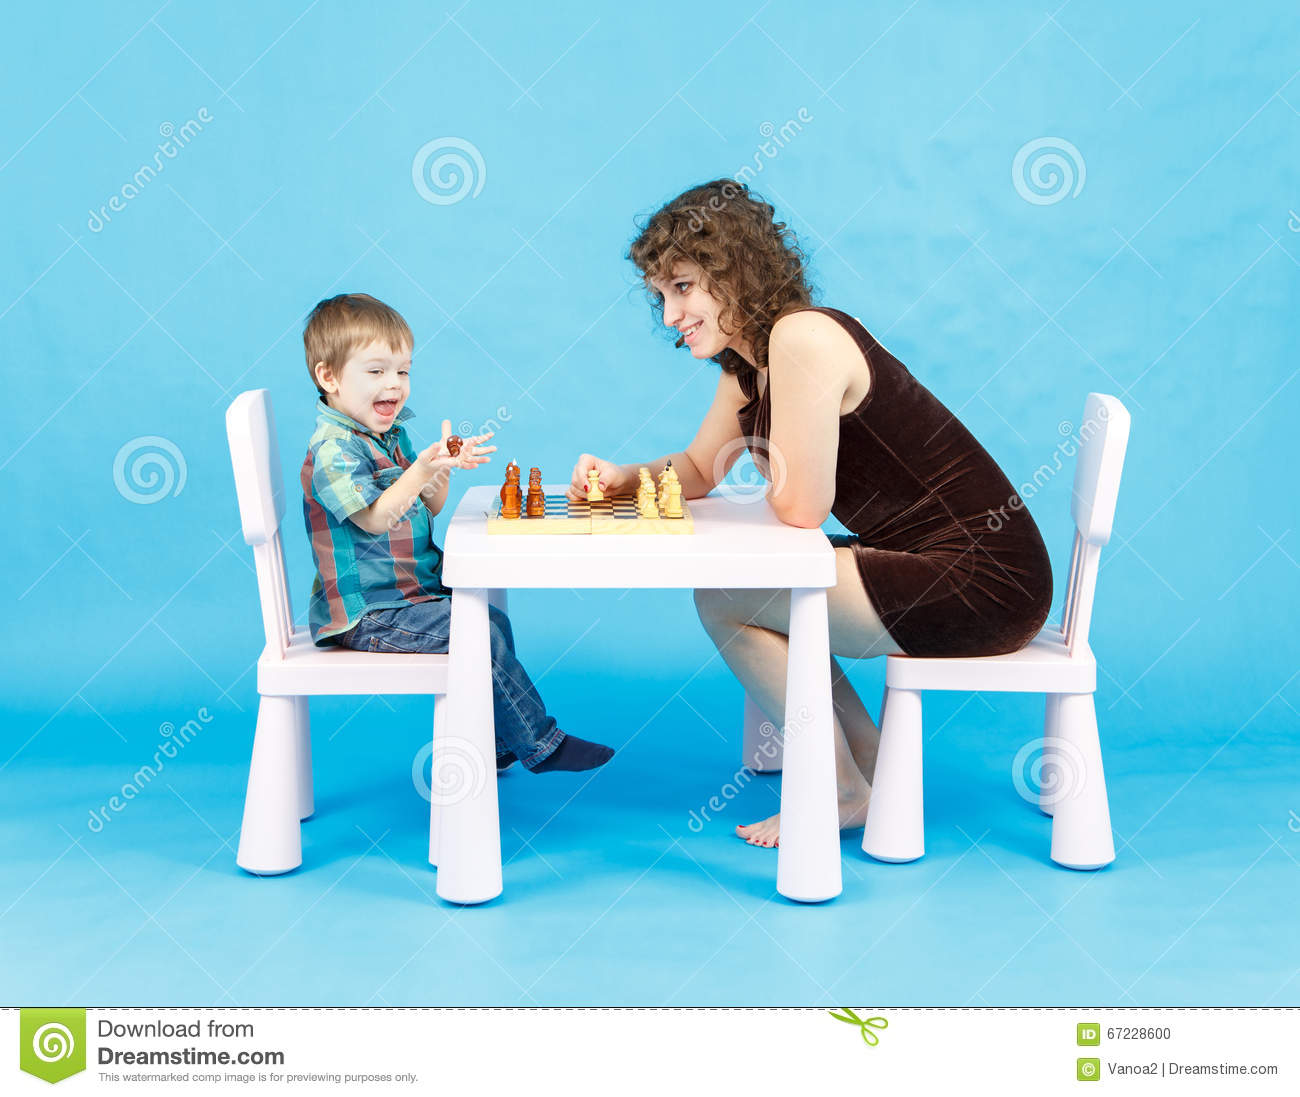 ass-bubble-mother-son-tamil-chess-stories